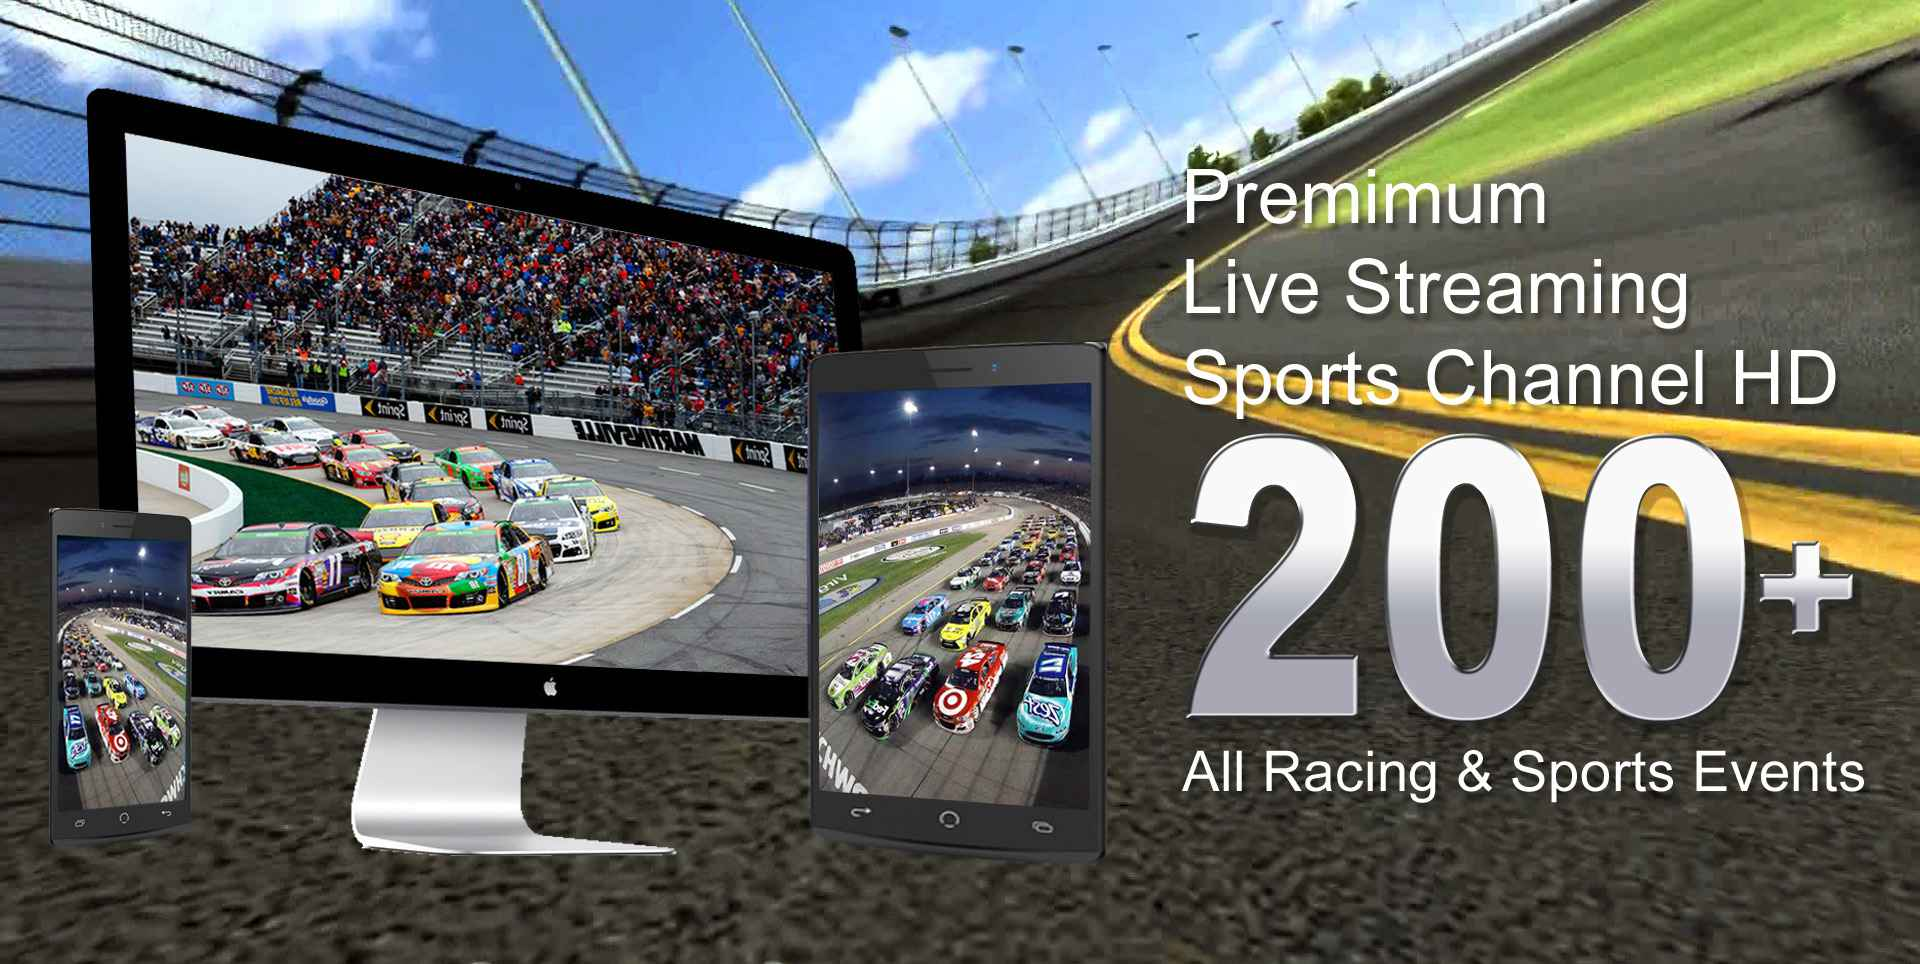 Nationwide Childrens Hospital 200 race Live Coverage